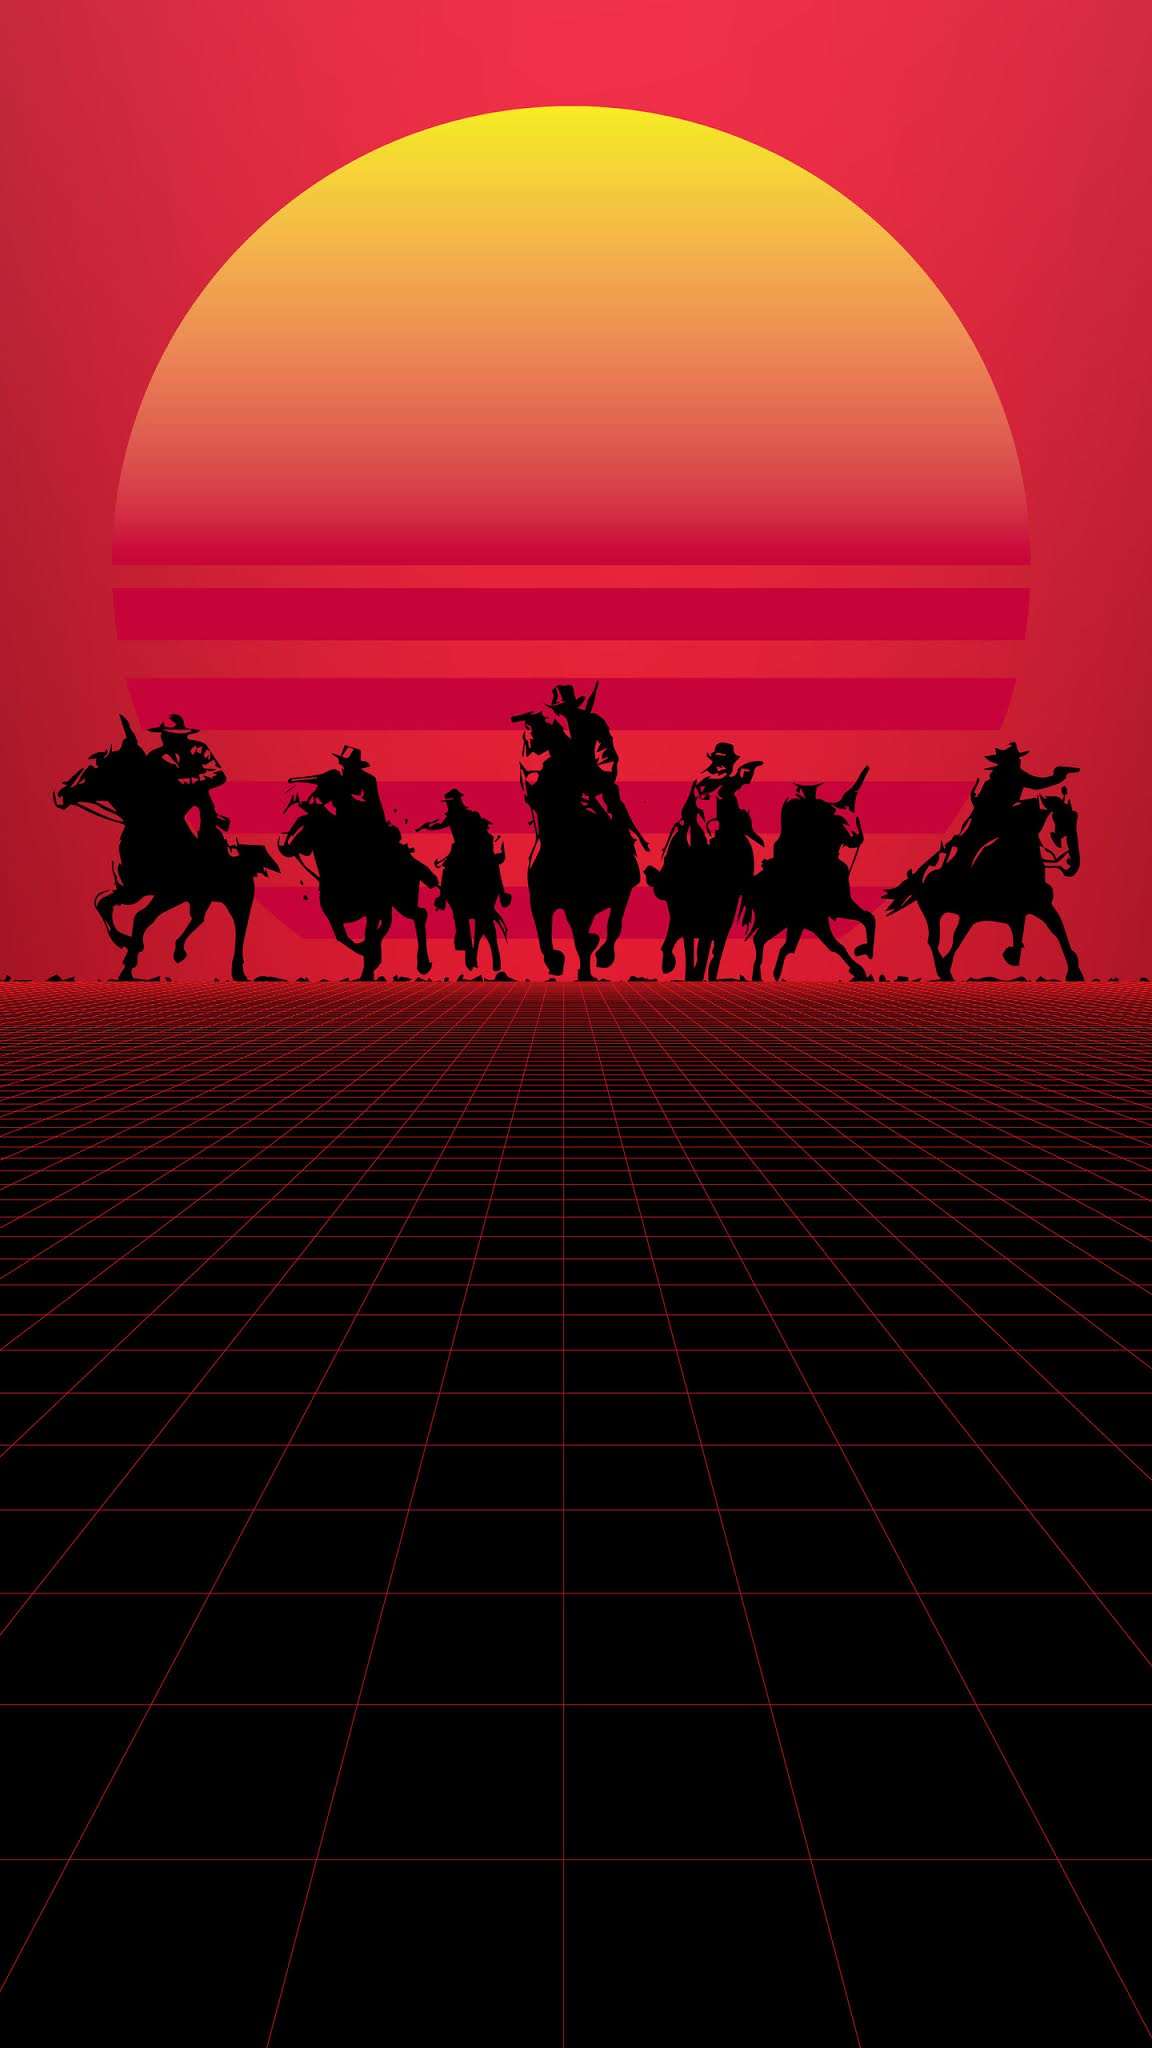 red dead redemption minimal mobile wallpaper 4k